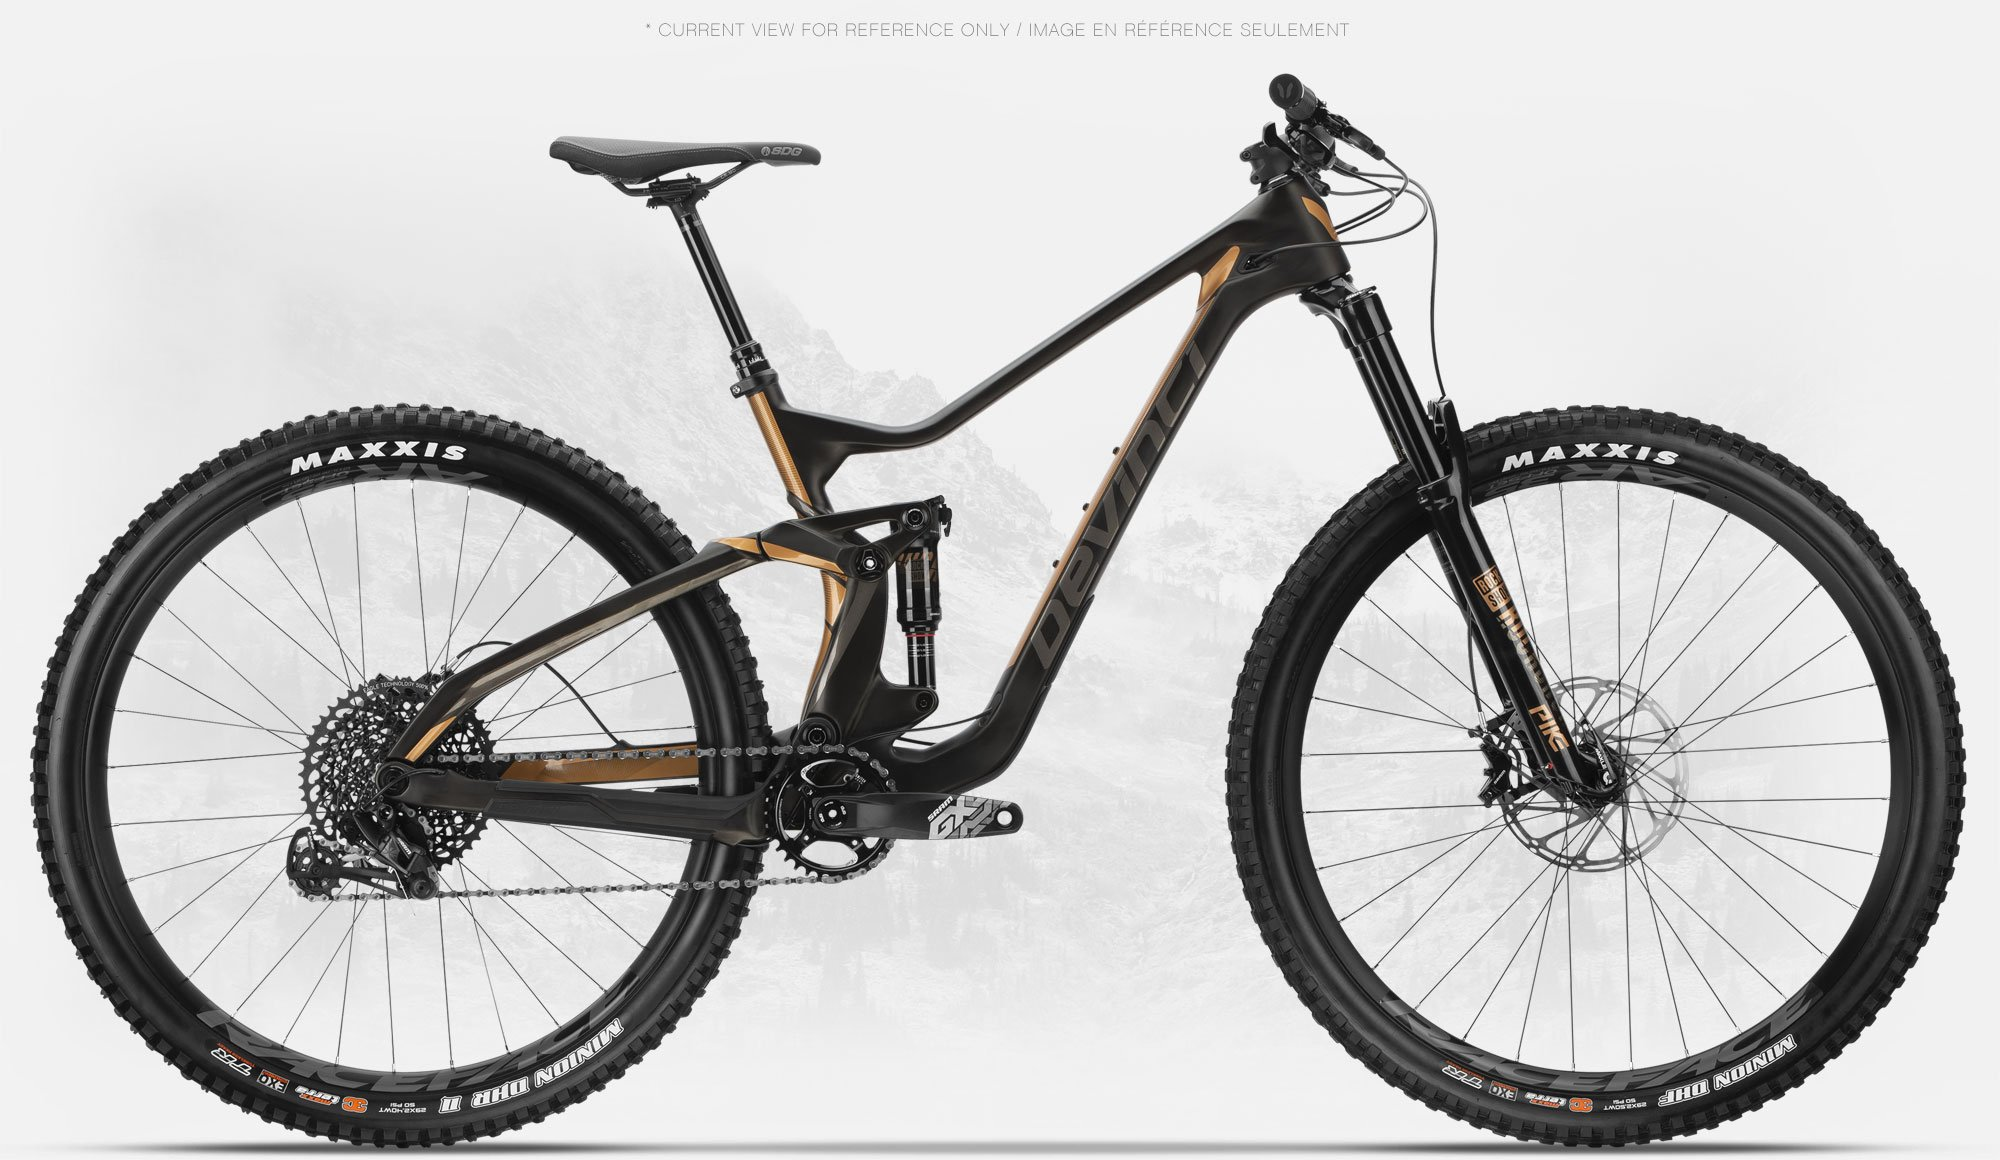 TROY CARBON 29ER GX EAGLE MEDIUM BLK/BRONZE